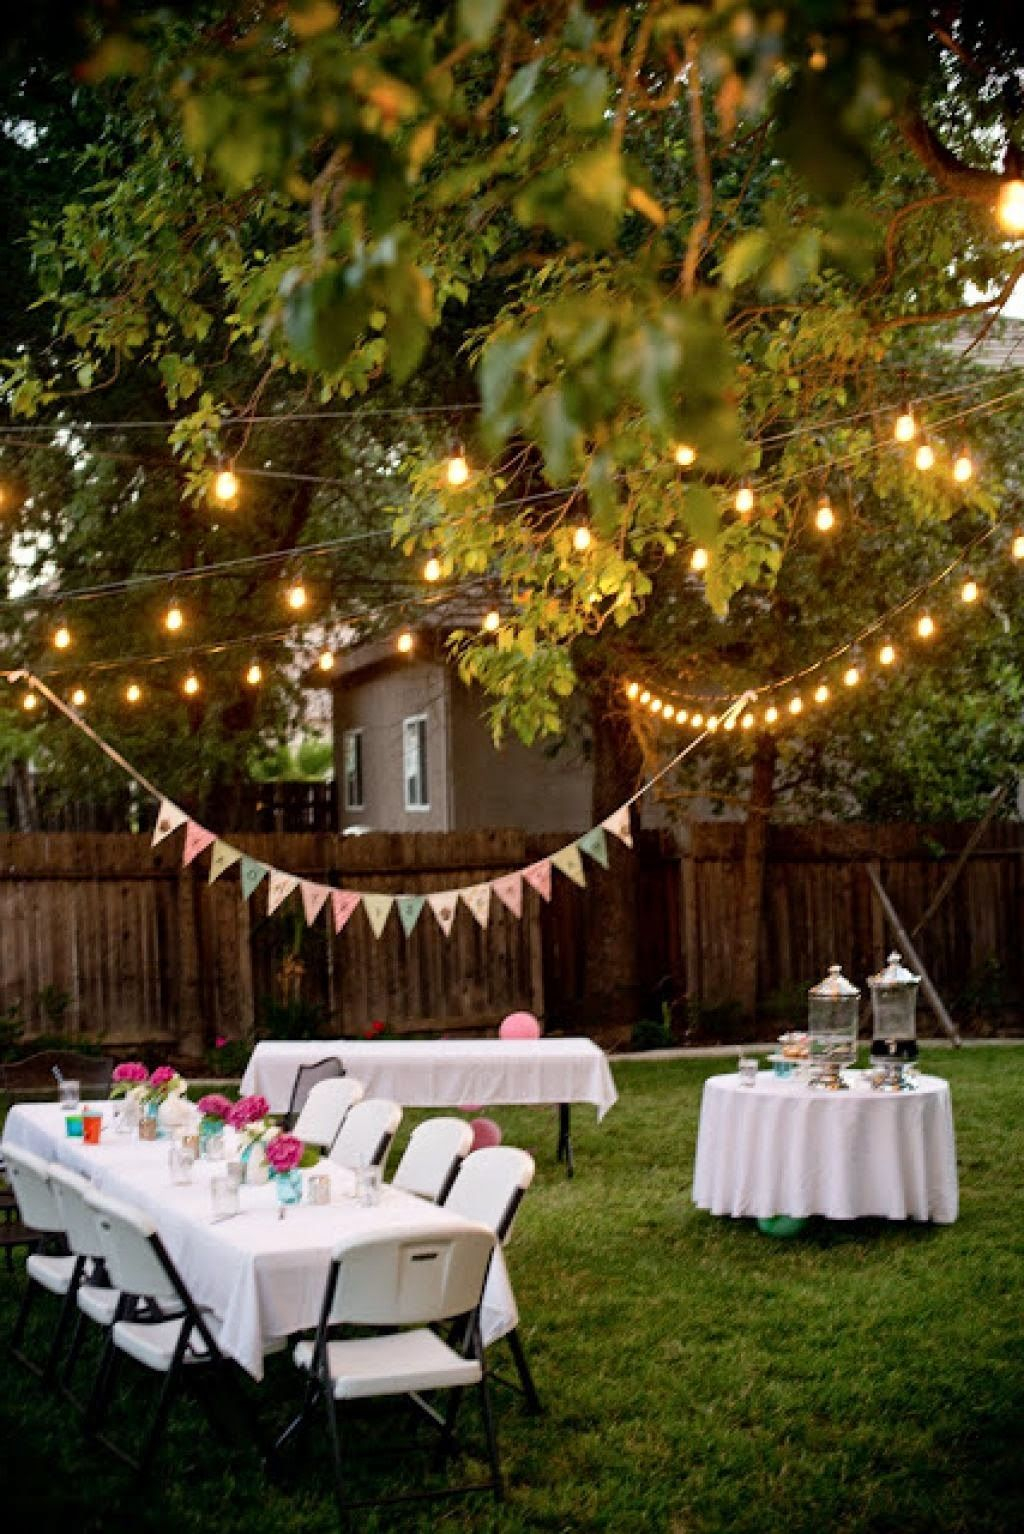 Backyard Party Decorating Backyard Design Ideas Backyard with 10 Awesome Ideas How to Makeover Backyard Party Decorating Ideas